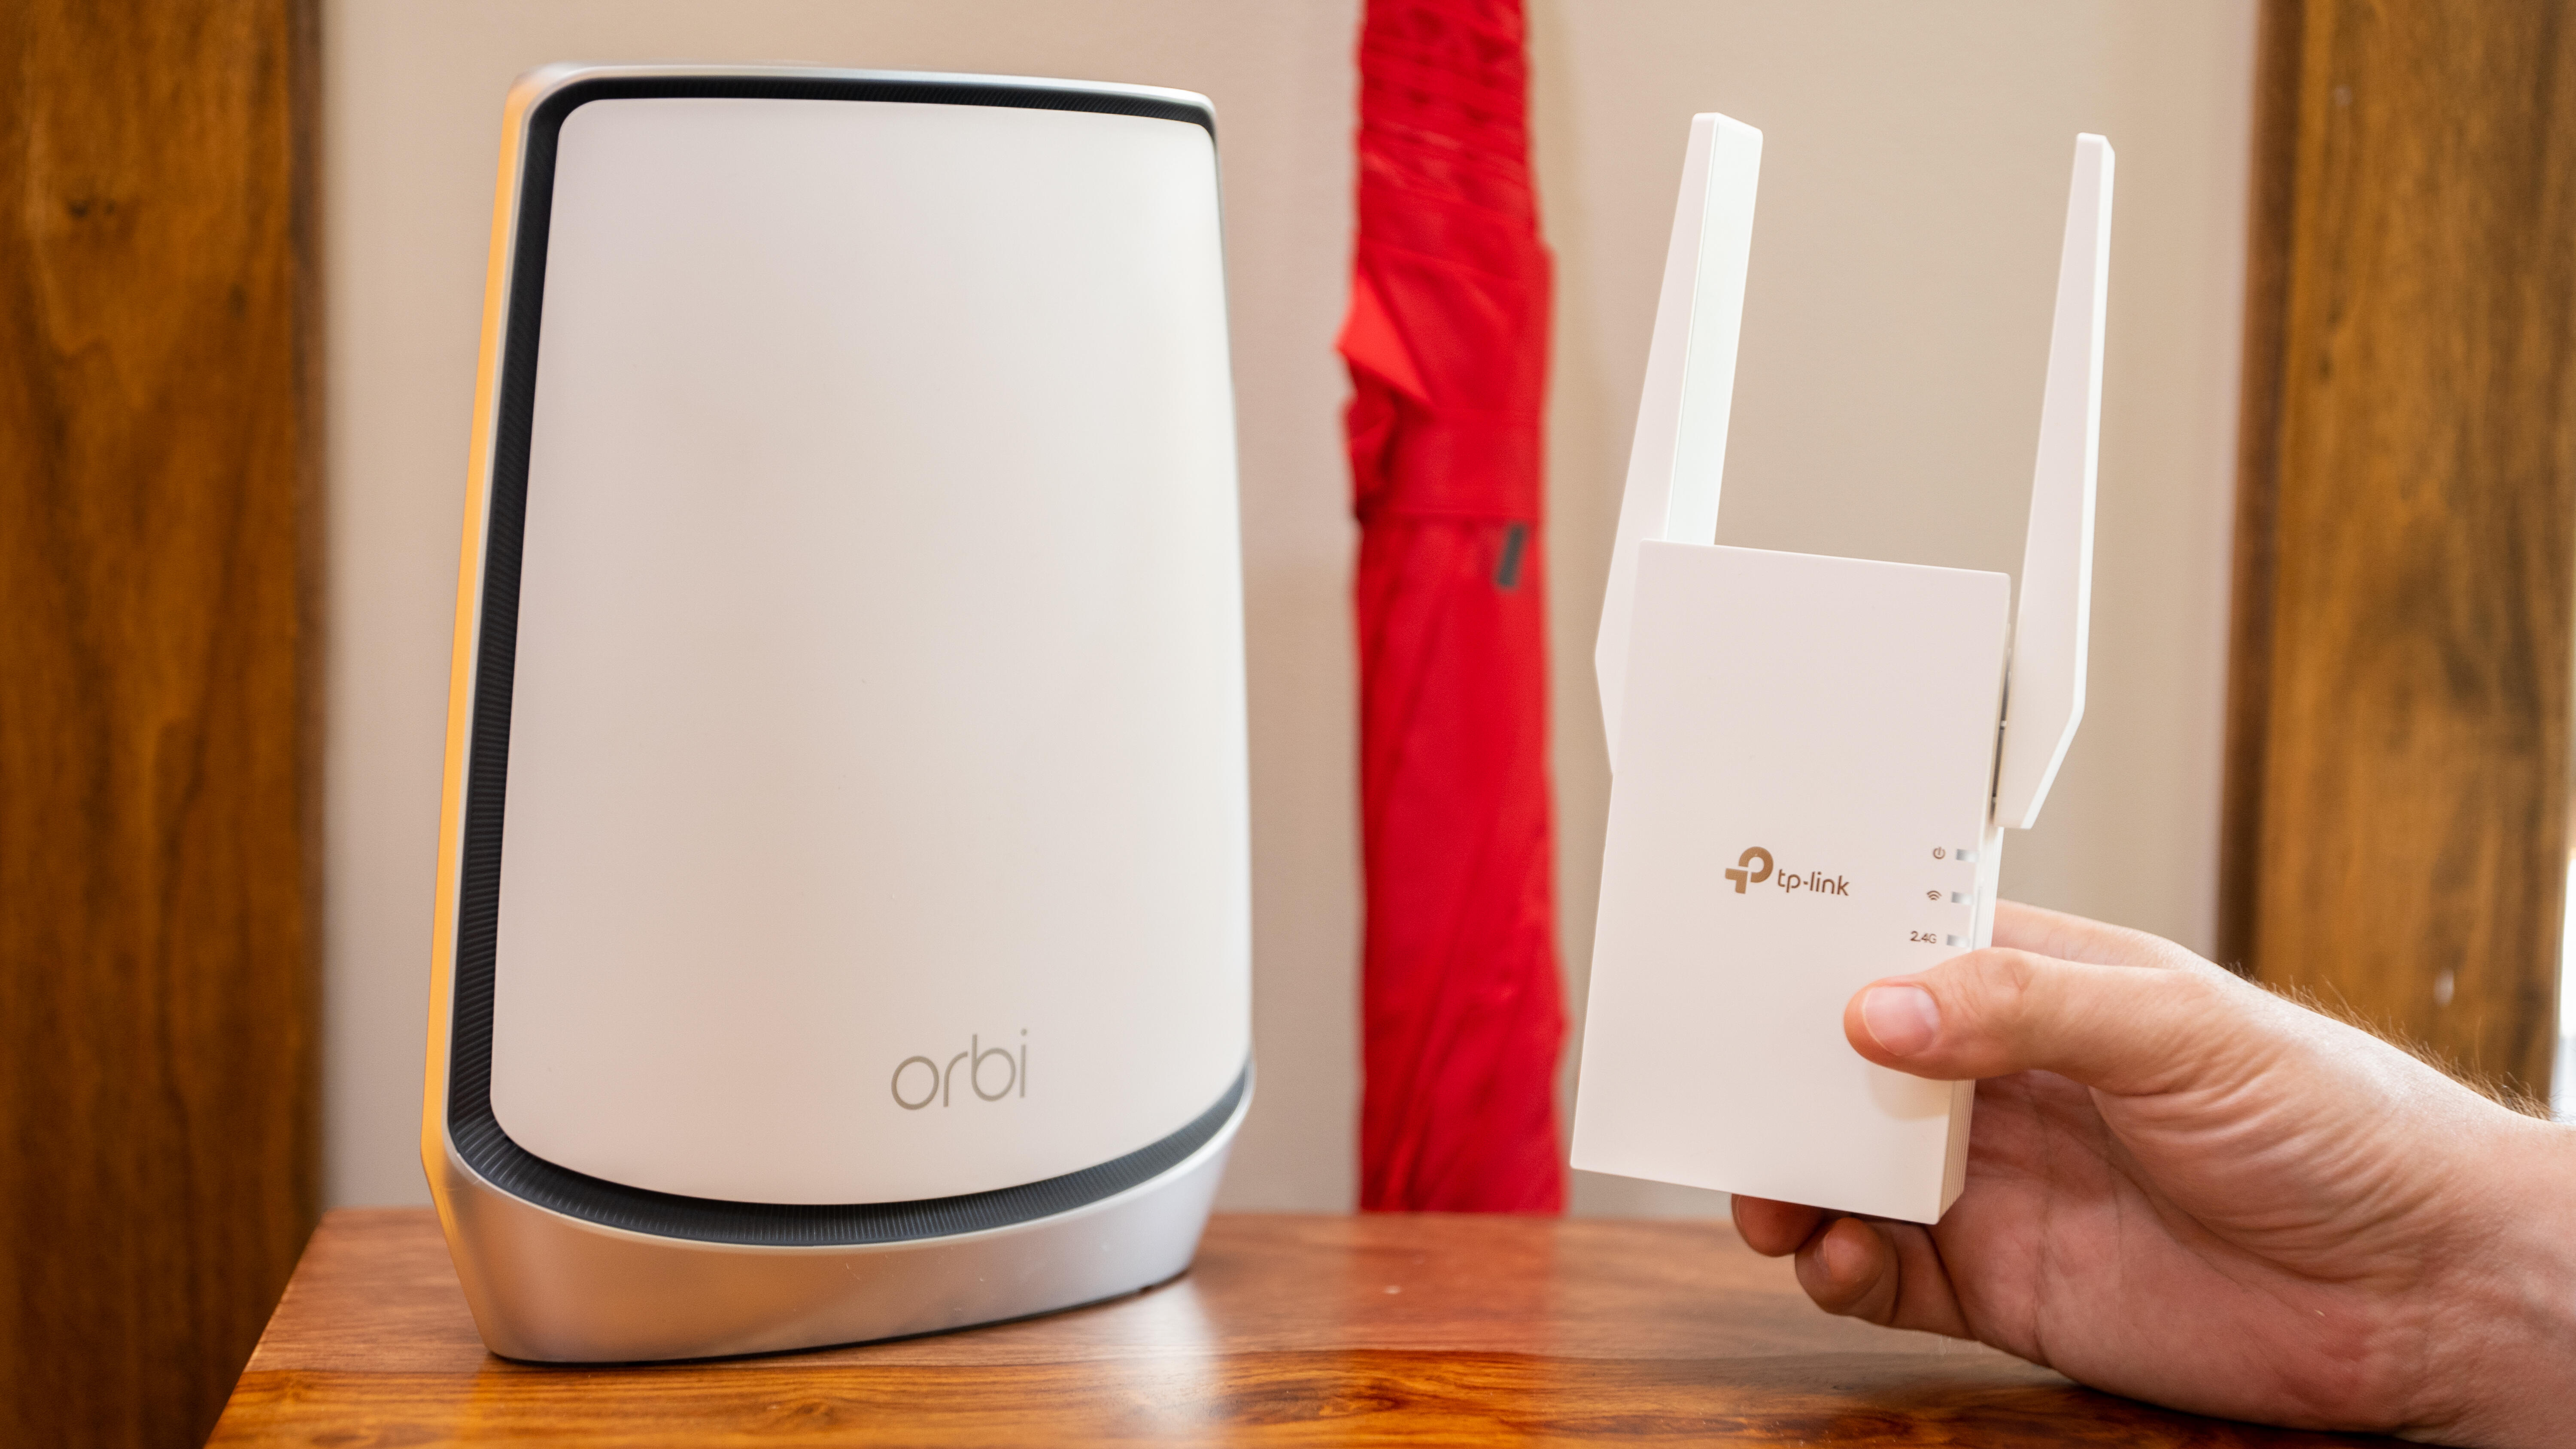 Video: Mesh Wi-Fi or range extenders? Pick the best option for you